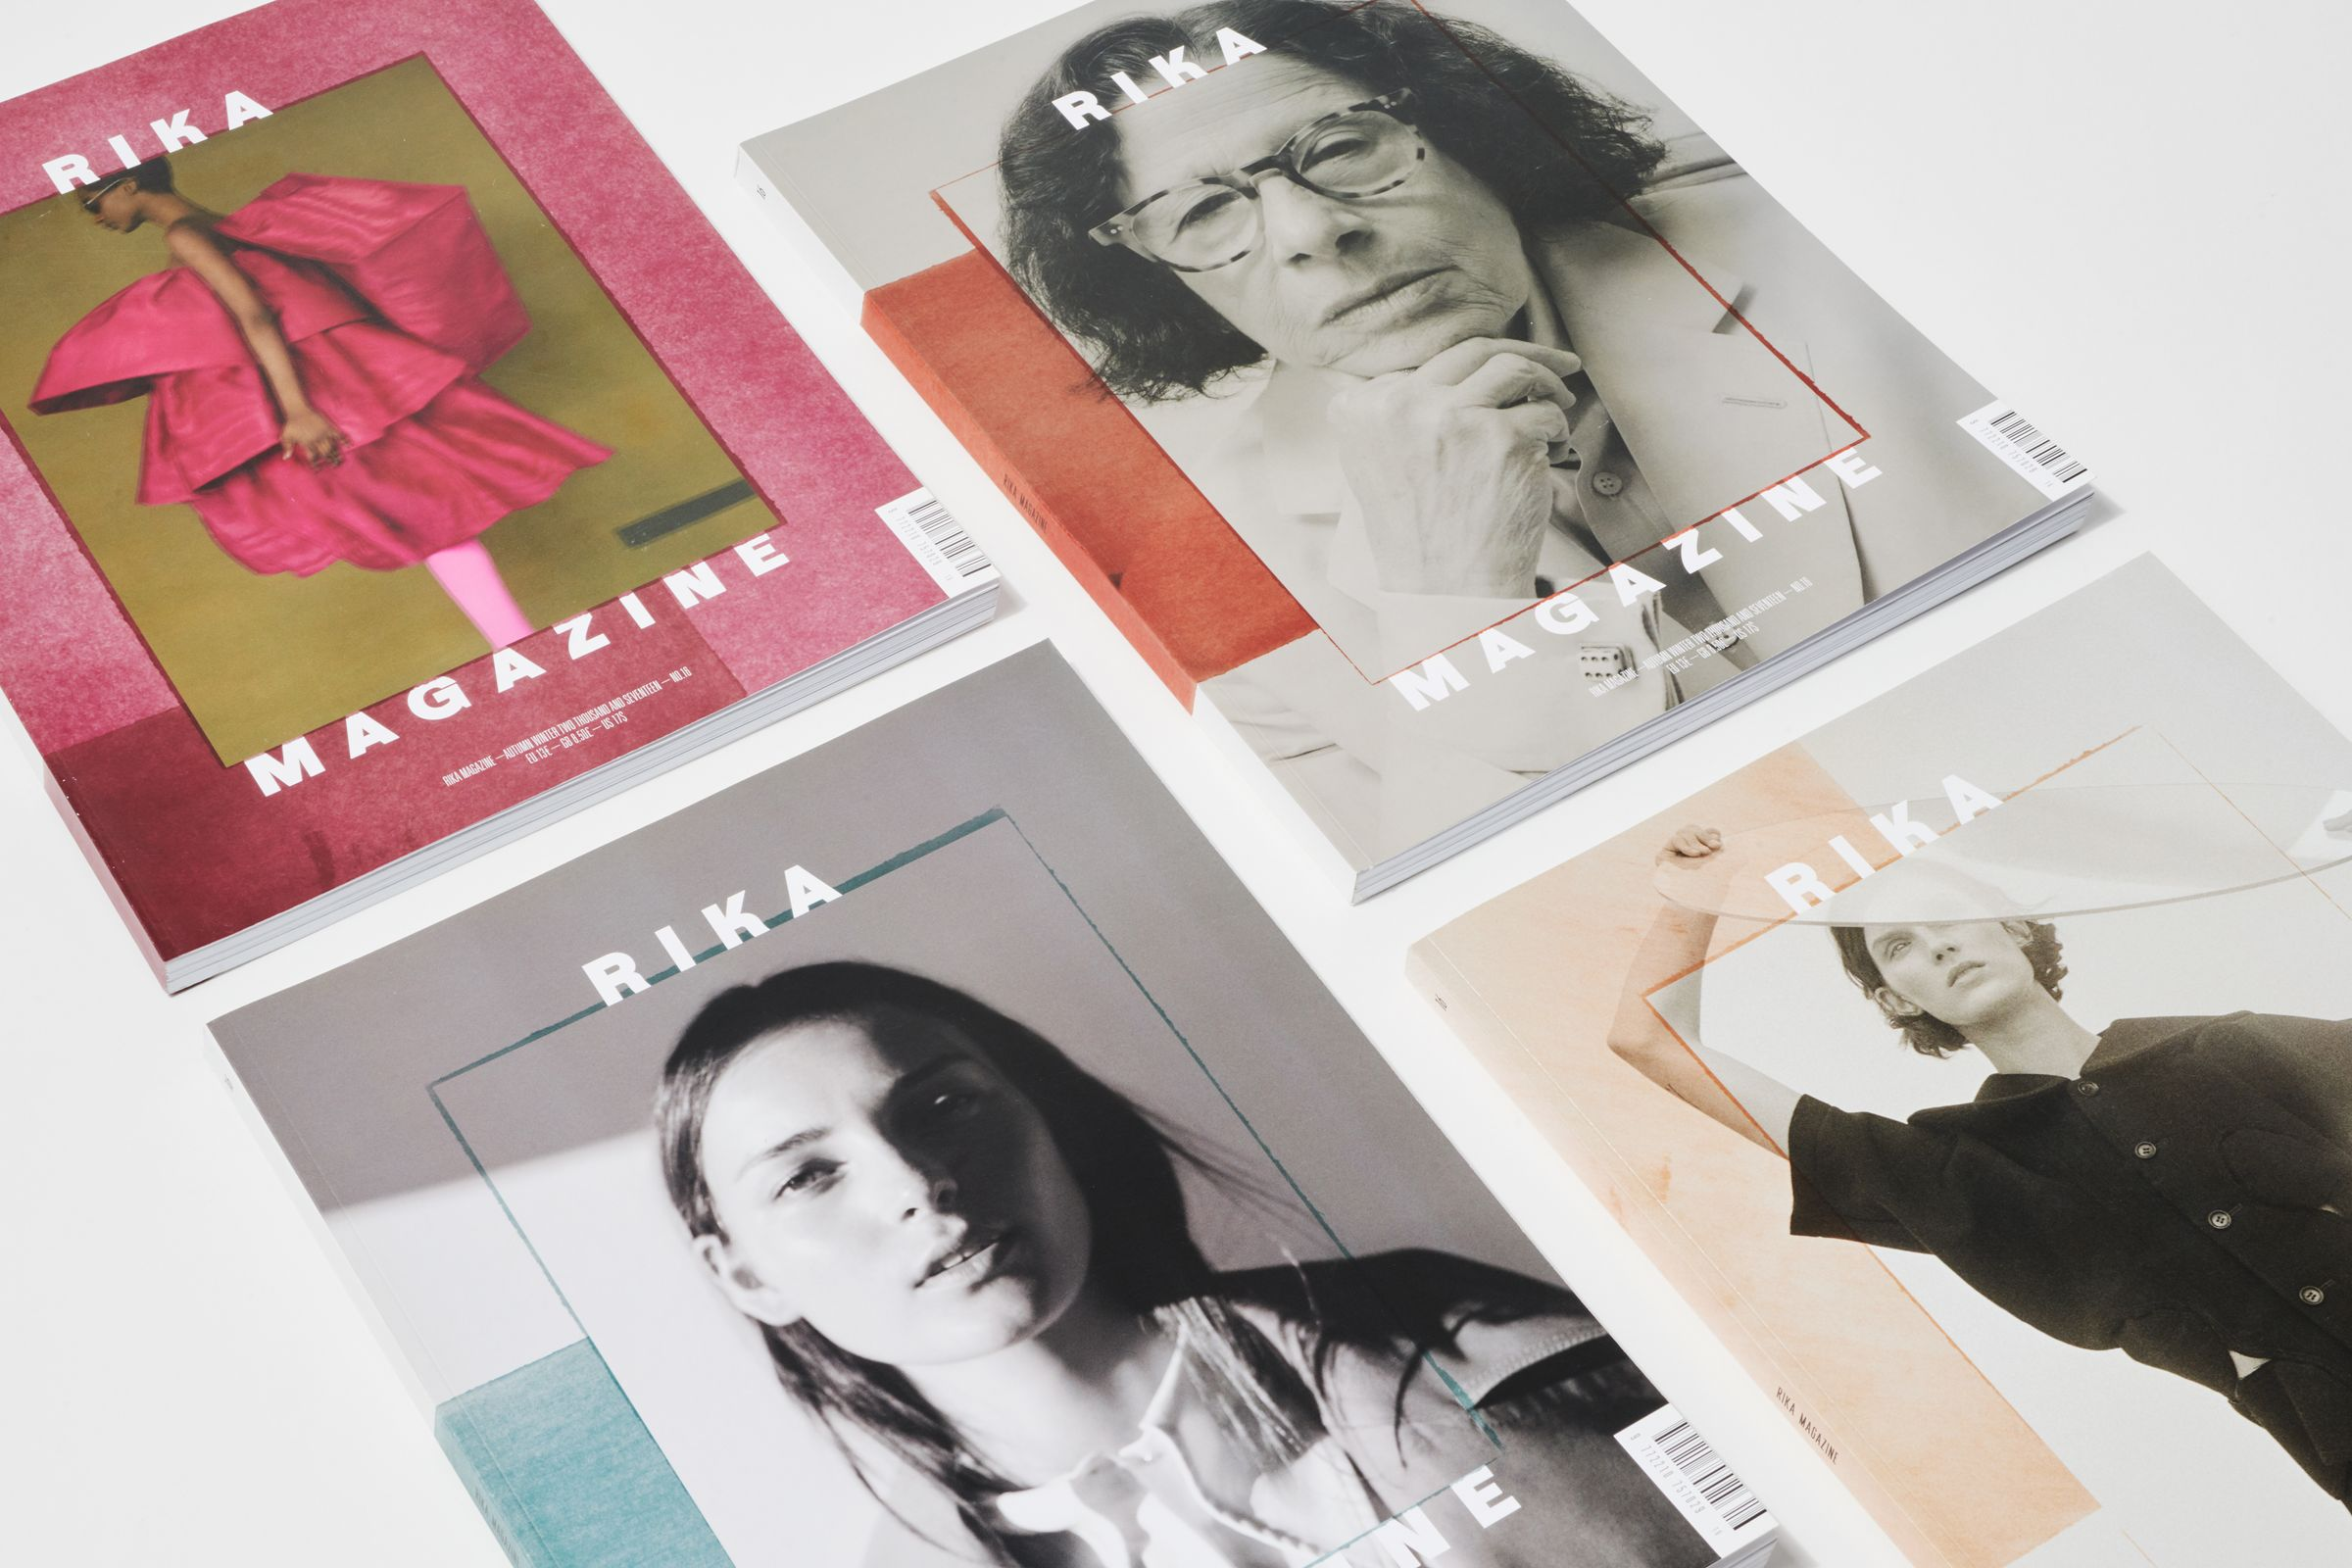 Rika Magazine issue no. 16 covers